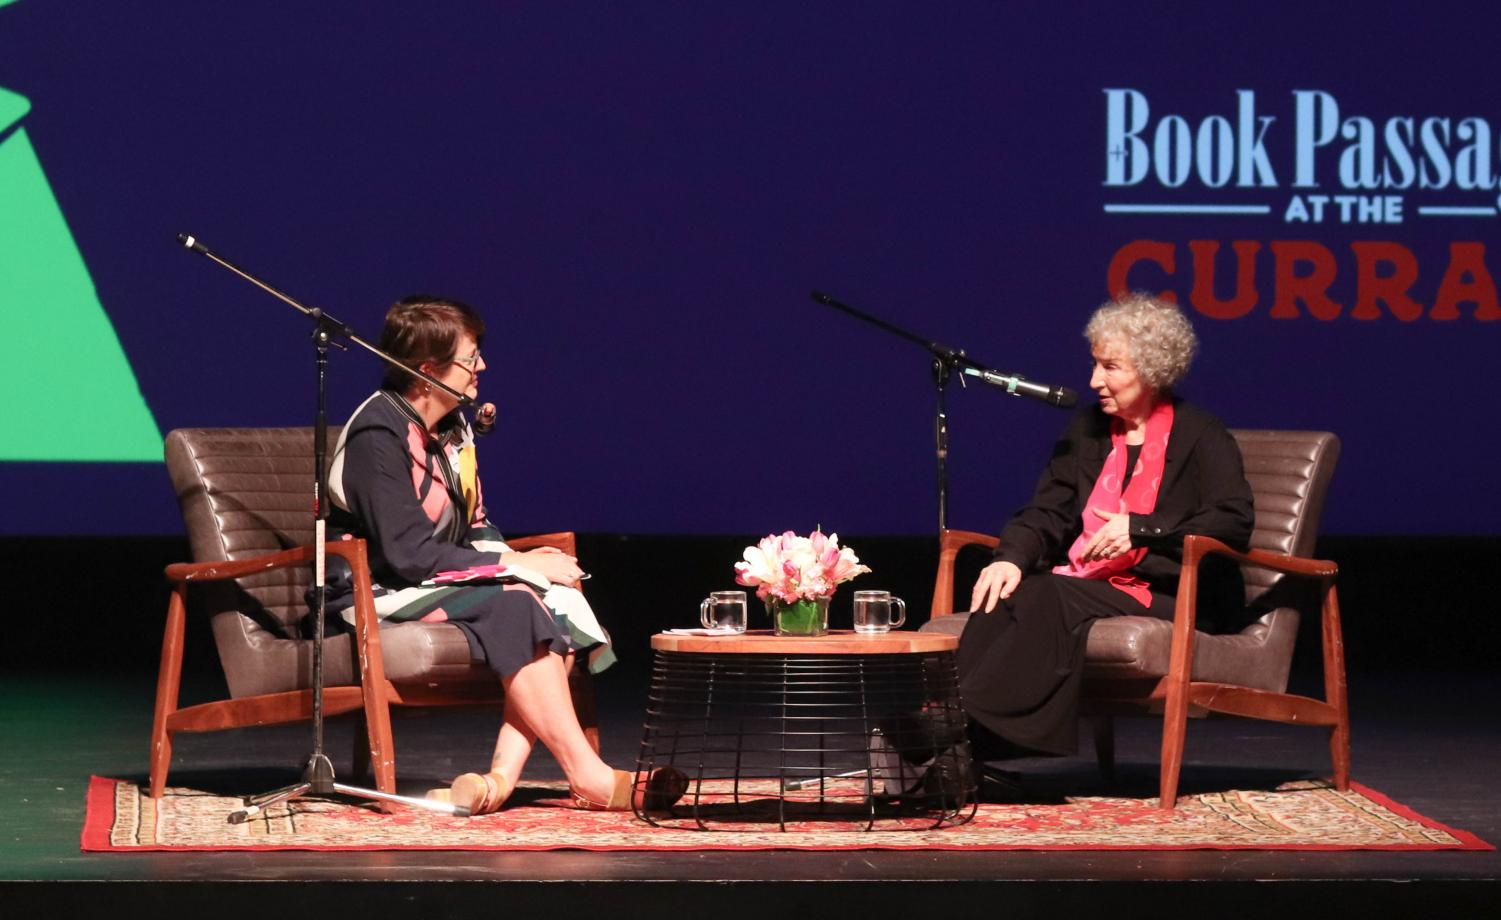 Nicole Stetsyuk Moderator Kelly Corrigan (left) and author Margaret Atwood (right) discuss Atwood's latest book release in Lowell's Carol Channing Theater.